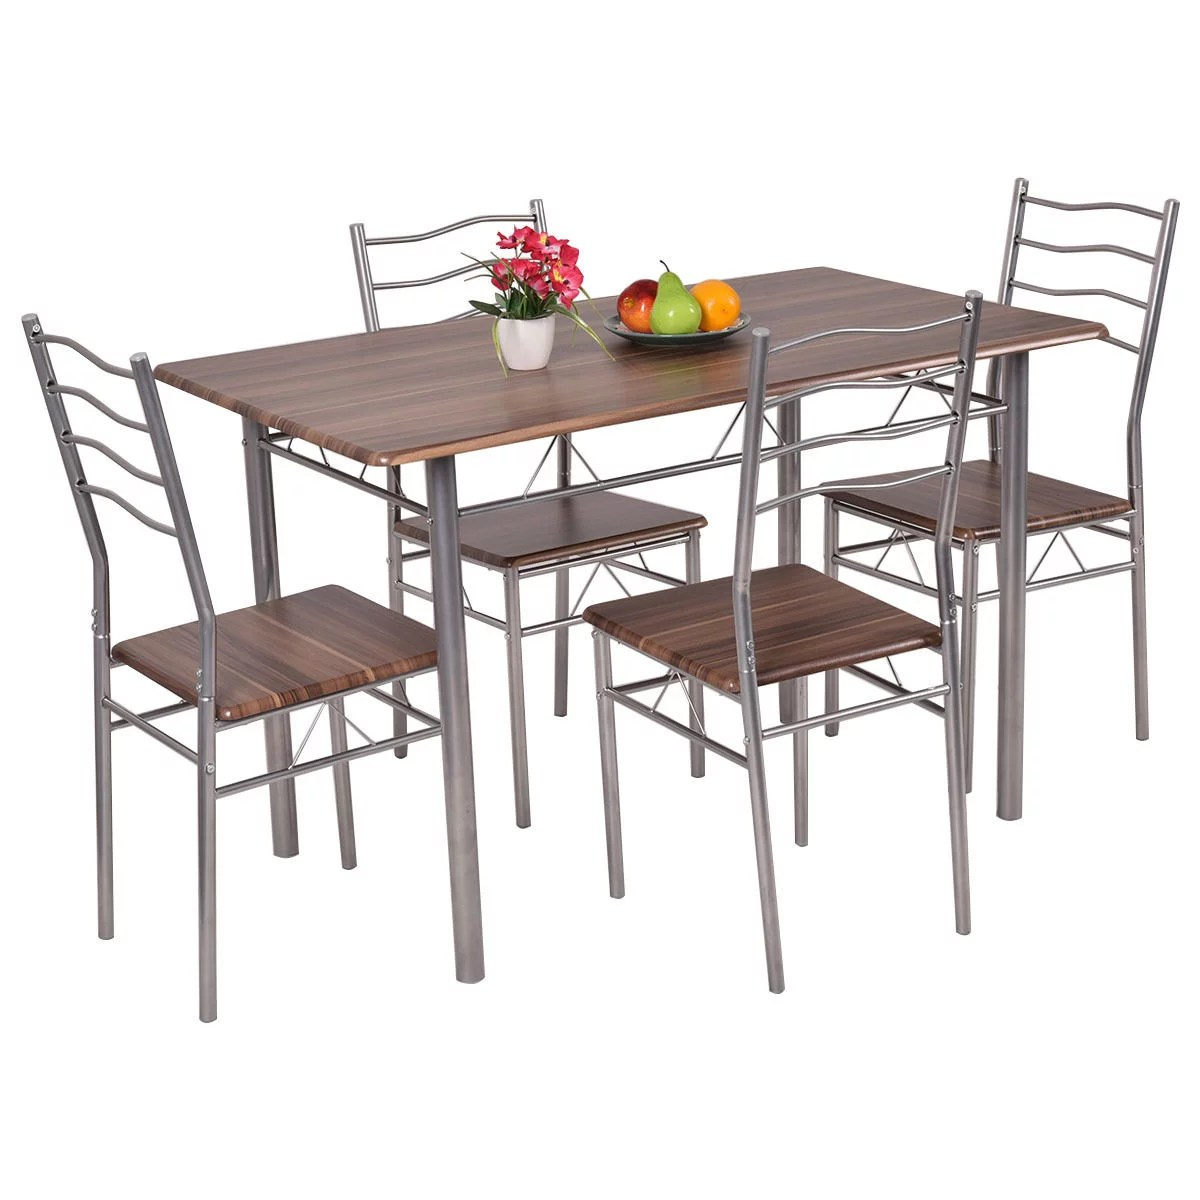 metal chairs and table chair covers derbyshire best choice products 5 piece kitchen dining set w glass top 4 leather dinette black walmart com